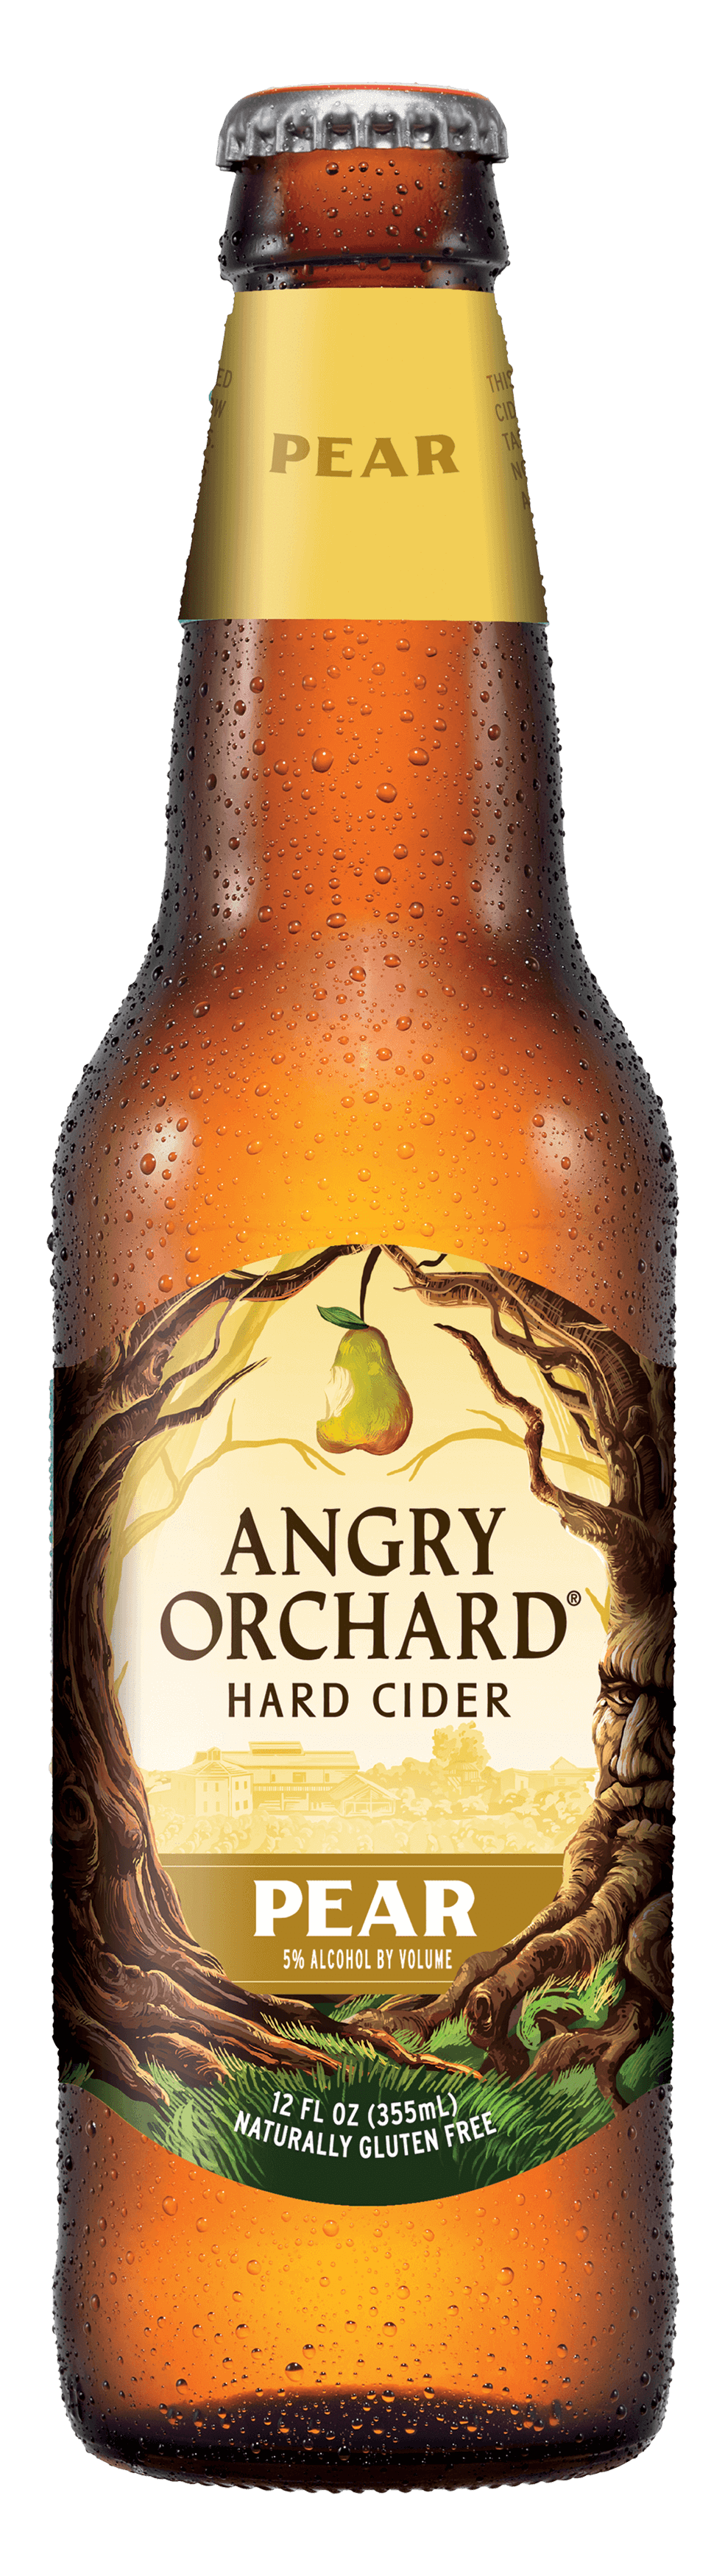 Angry Orchard Pear Hard Cider